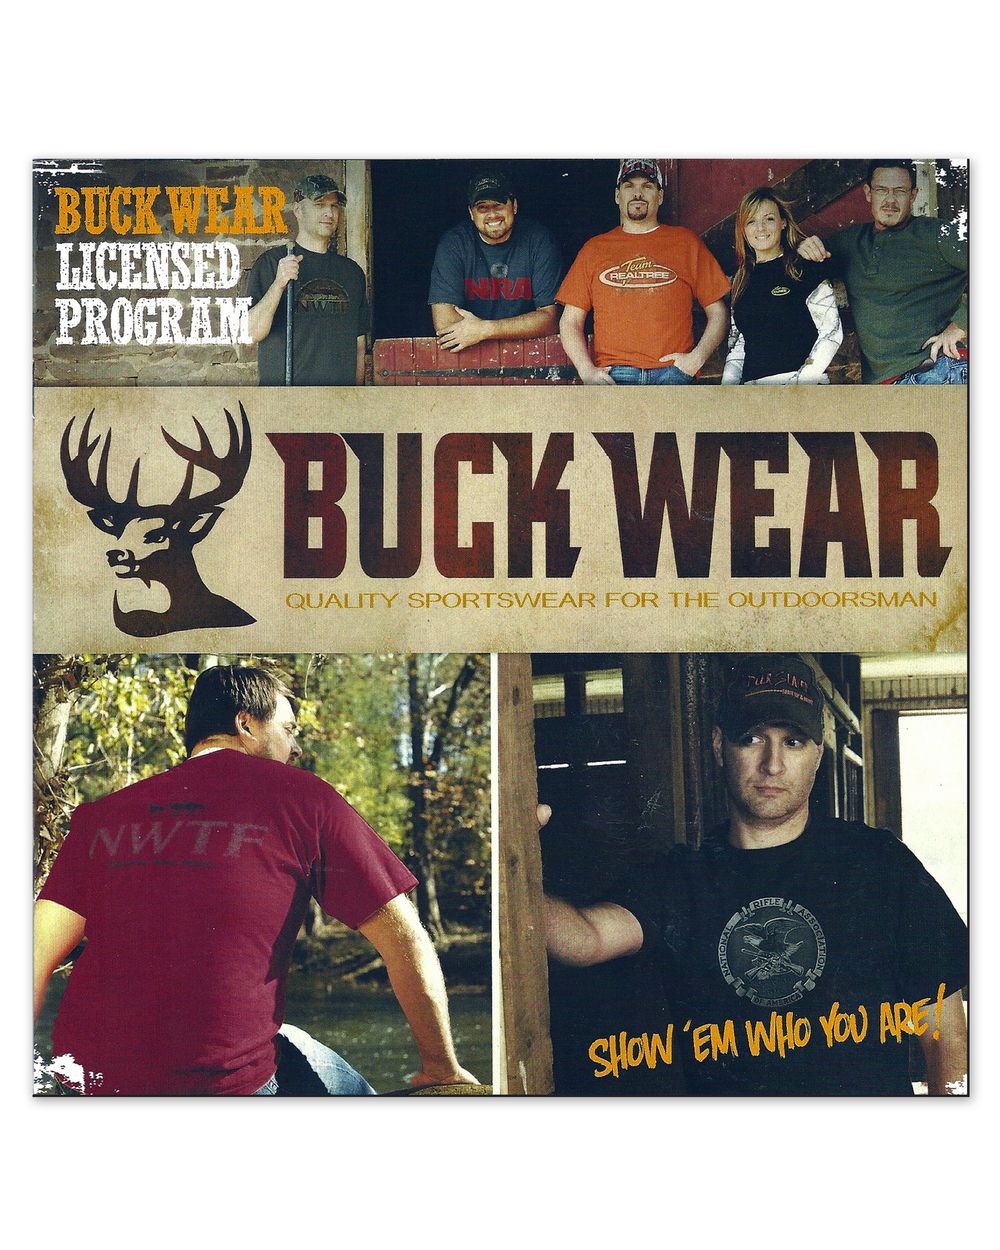 BuckWear Licensed    Program Catalog (2013)